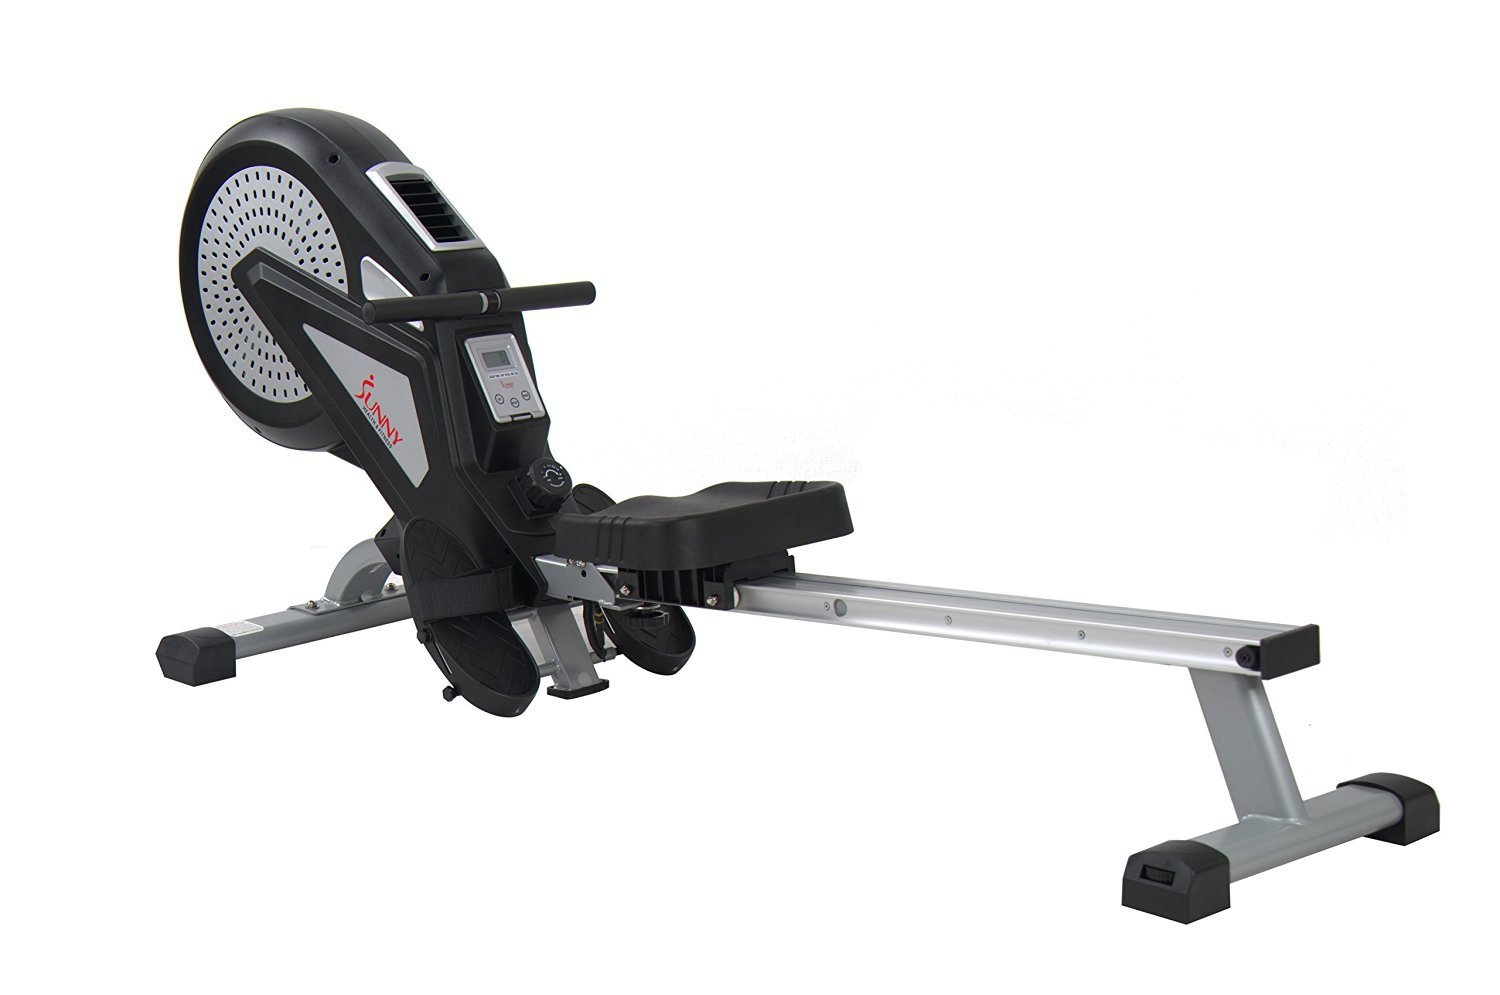 sunny-health-fitness-sf-rw5623-air-magnetic-rower-with-dynamic-response